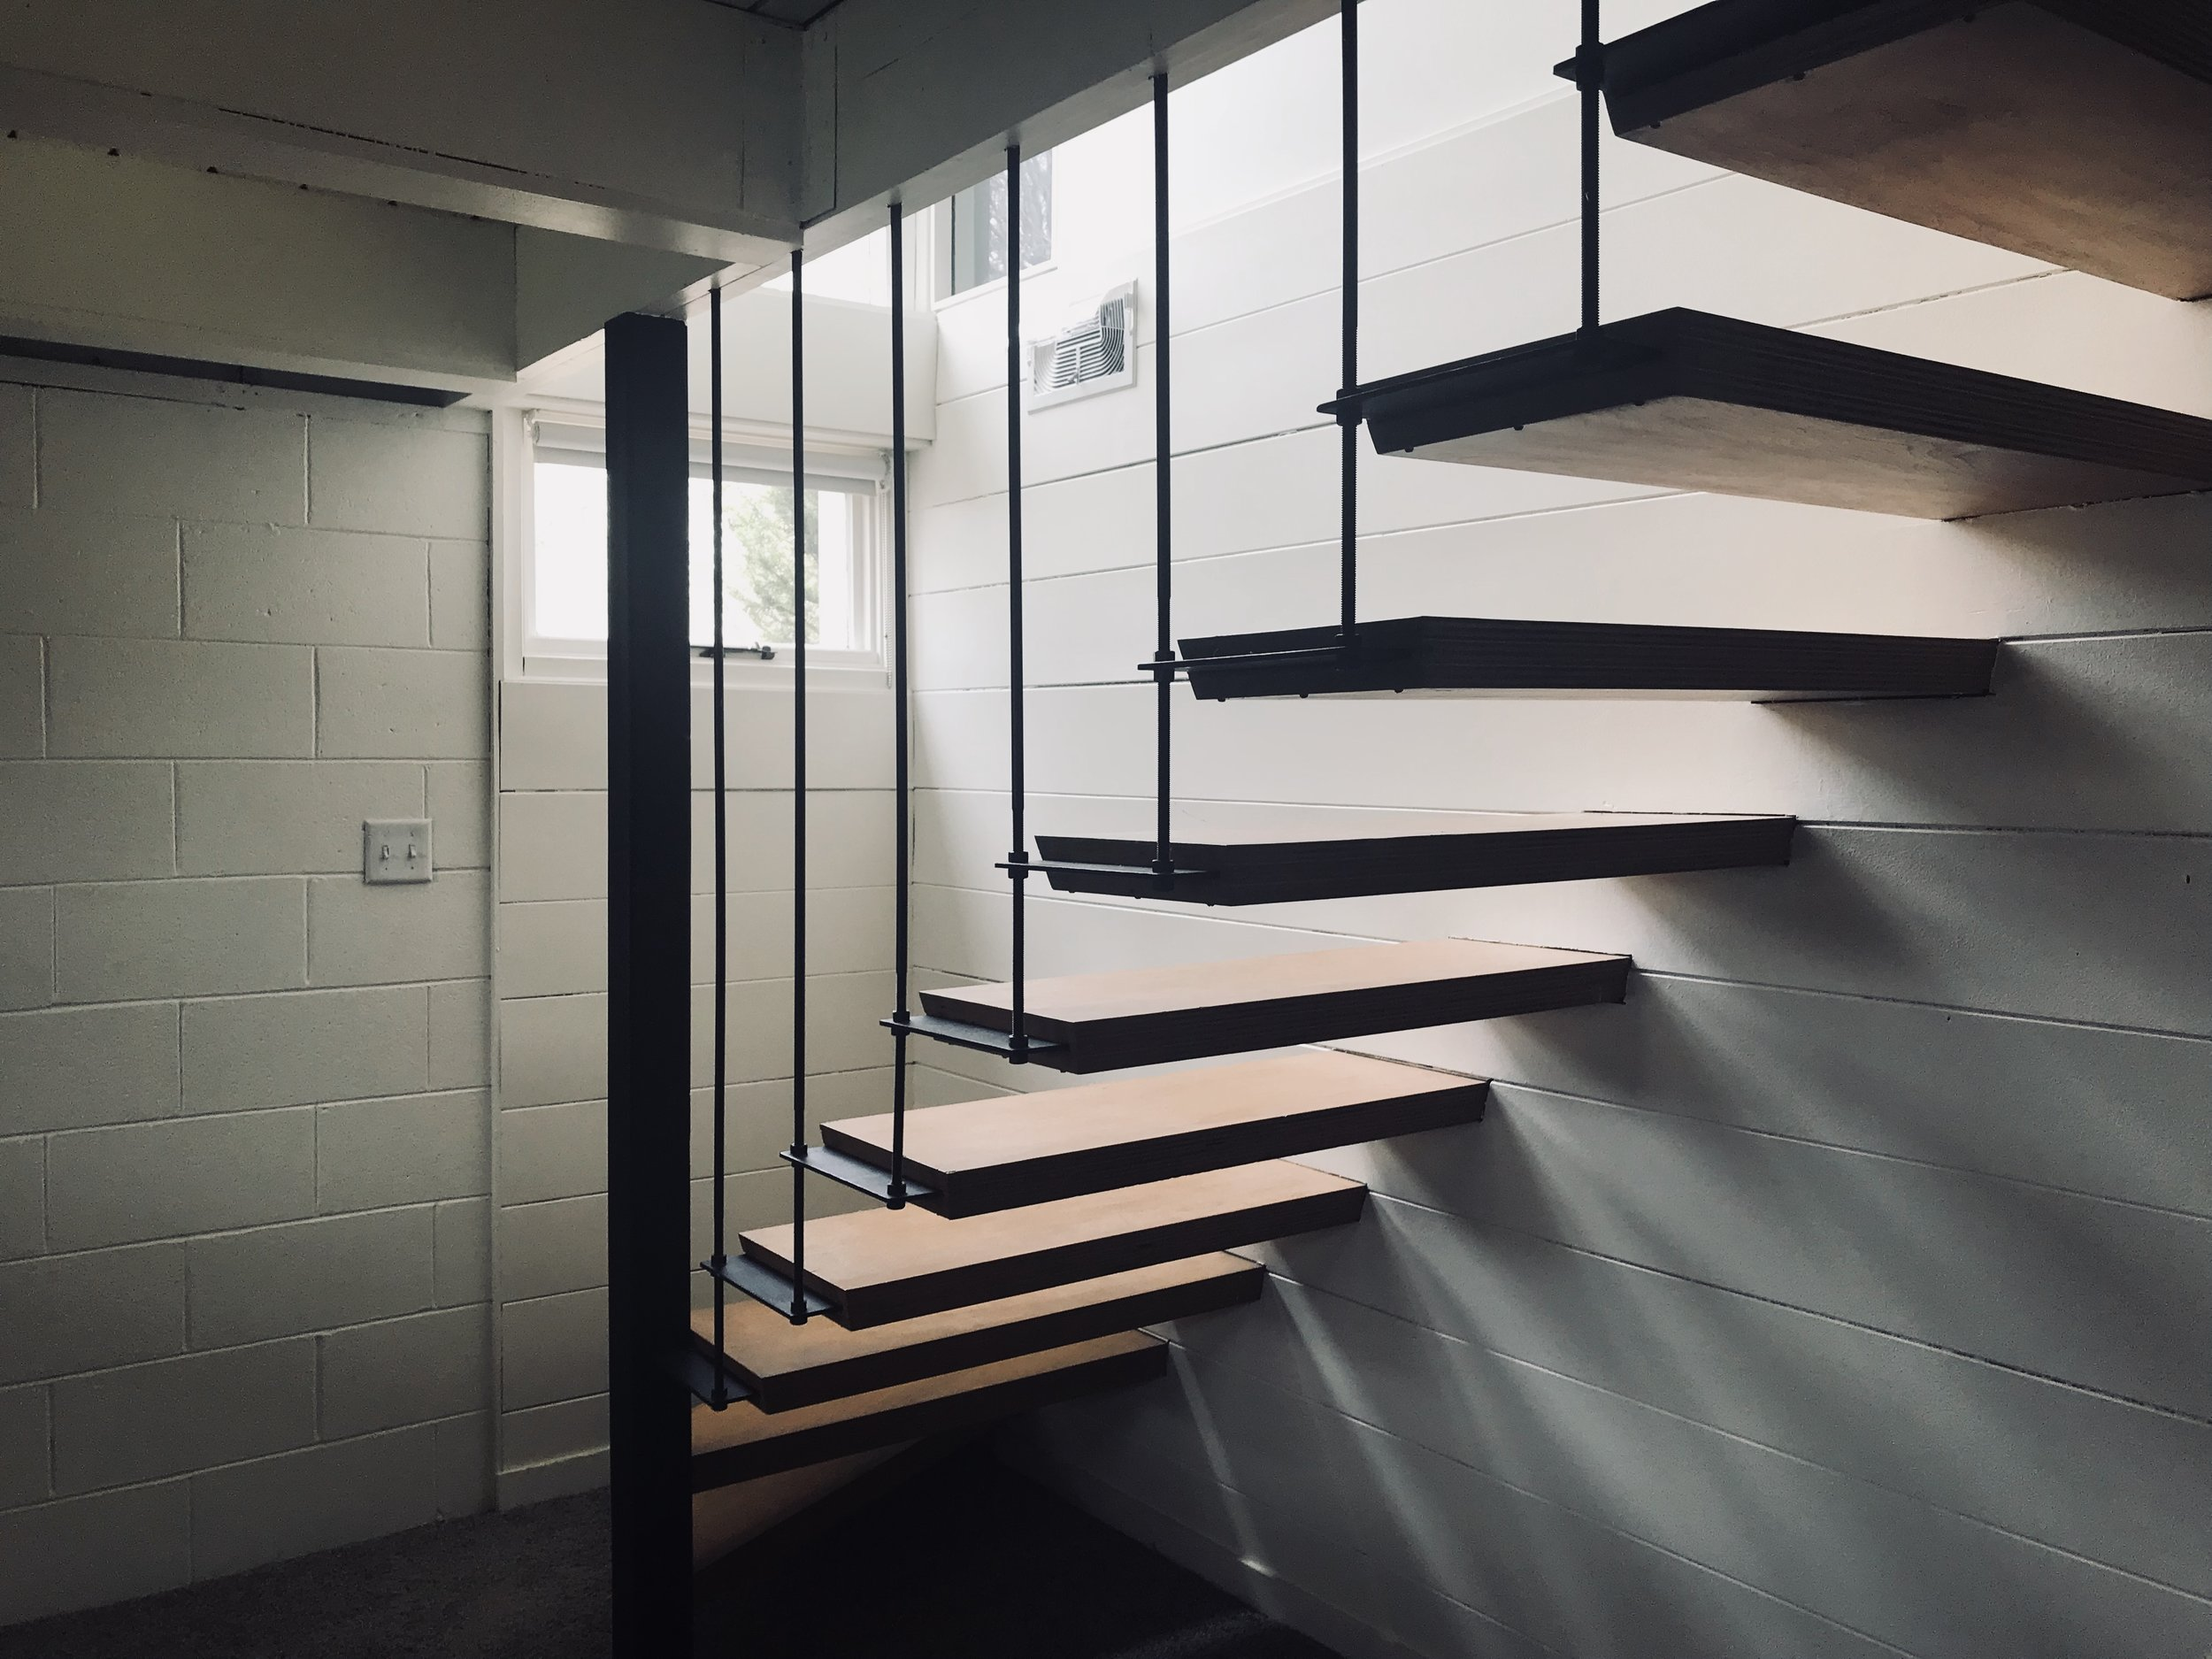 STAIRWAY WITH VIEW OF INDUSTRIAL RODS AND OPEN TREADS